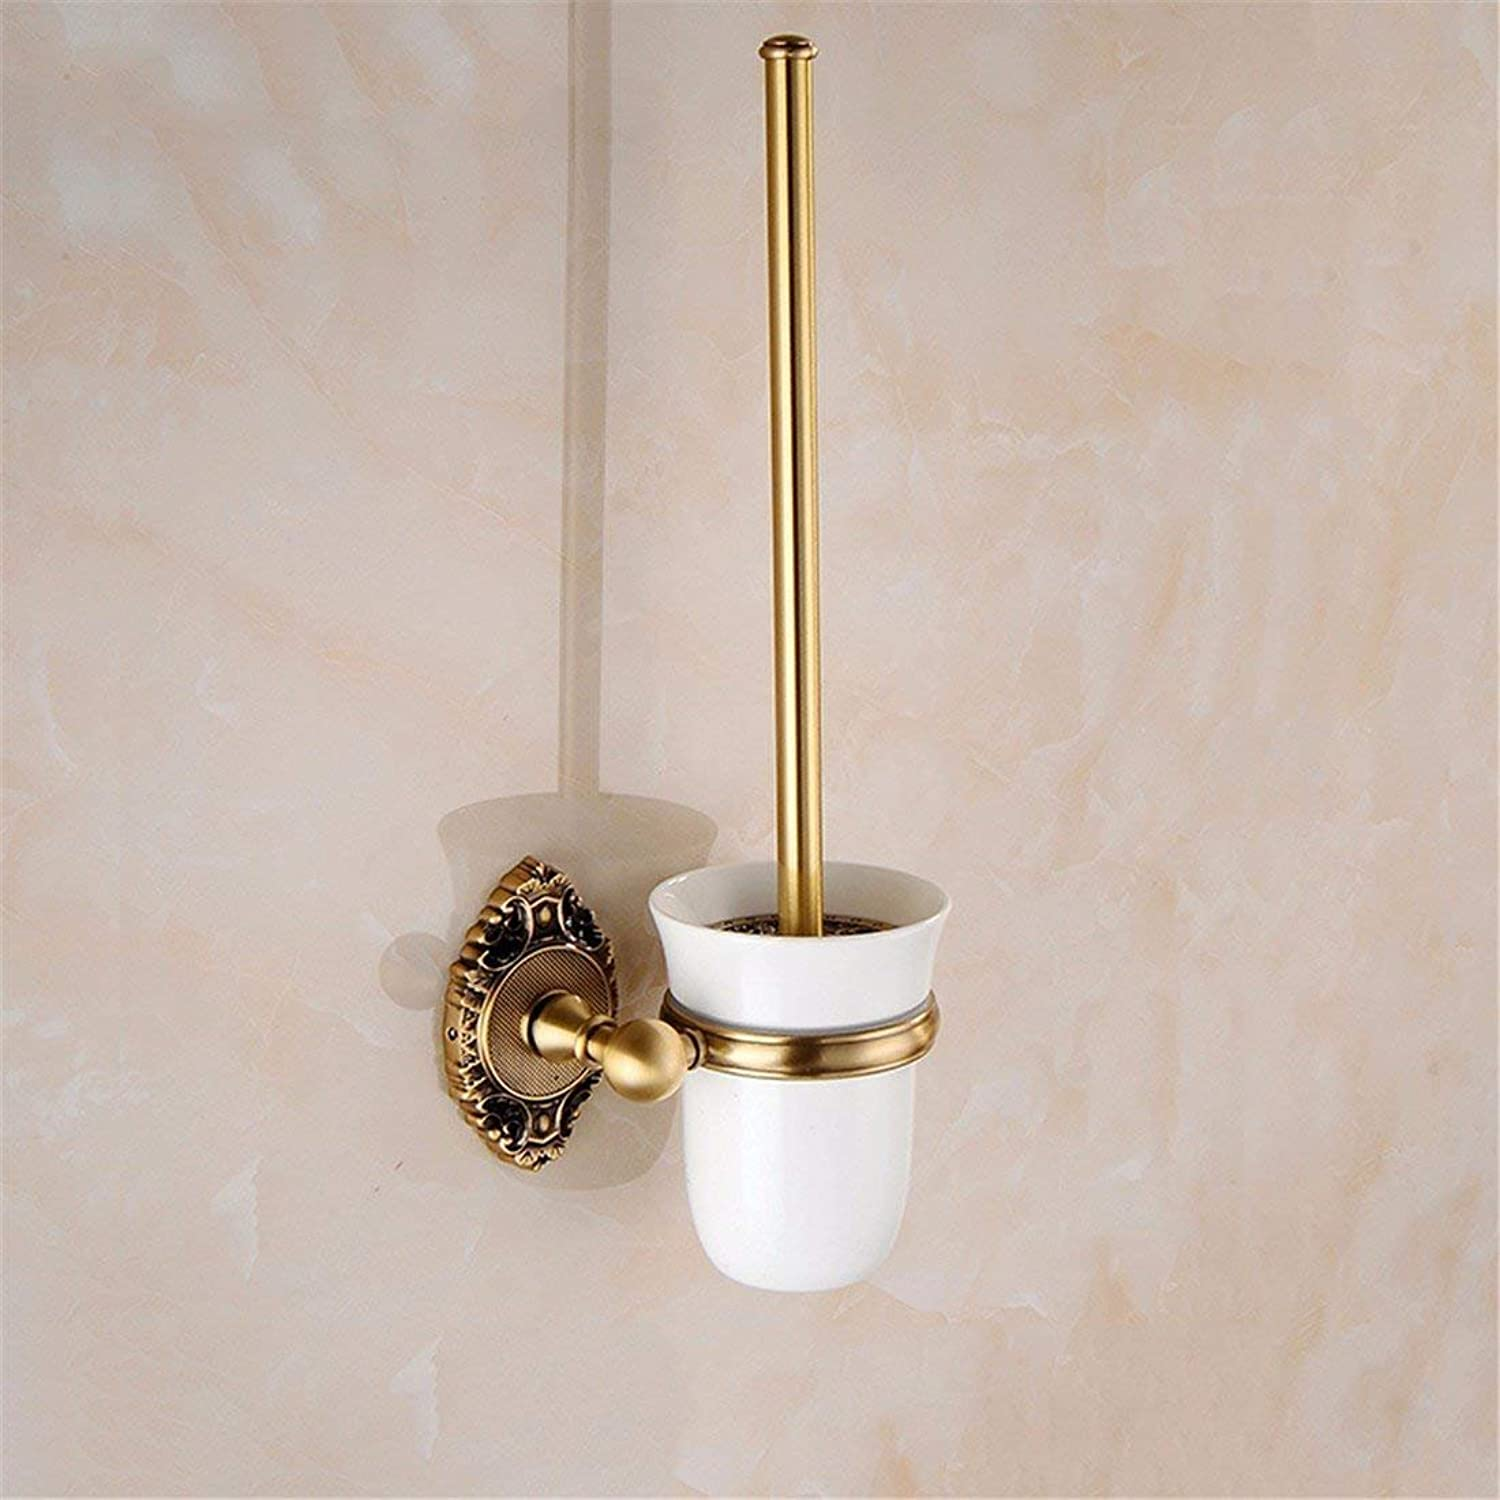 European Style of The Ancient Copper Carved Accessories of Room of a Large Holding in Pure Copper Hook,Toilet Brush